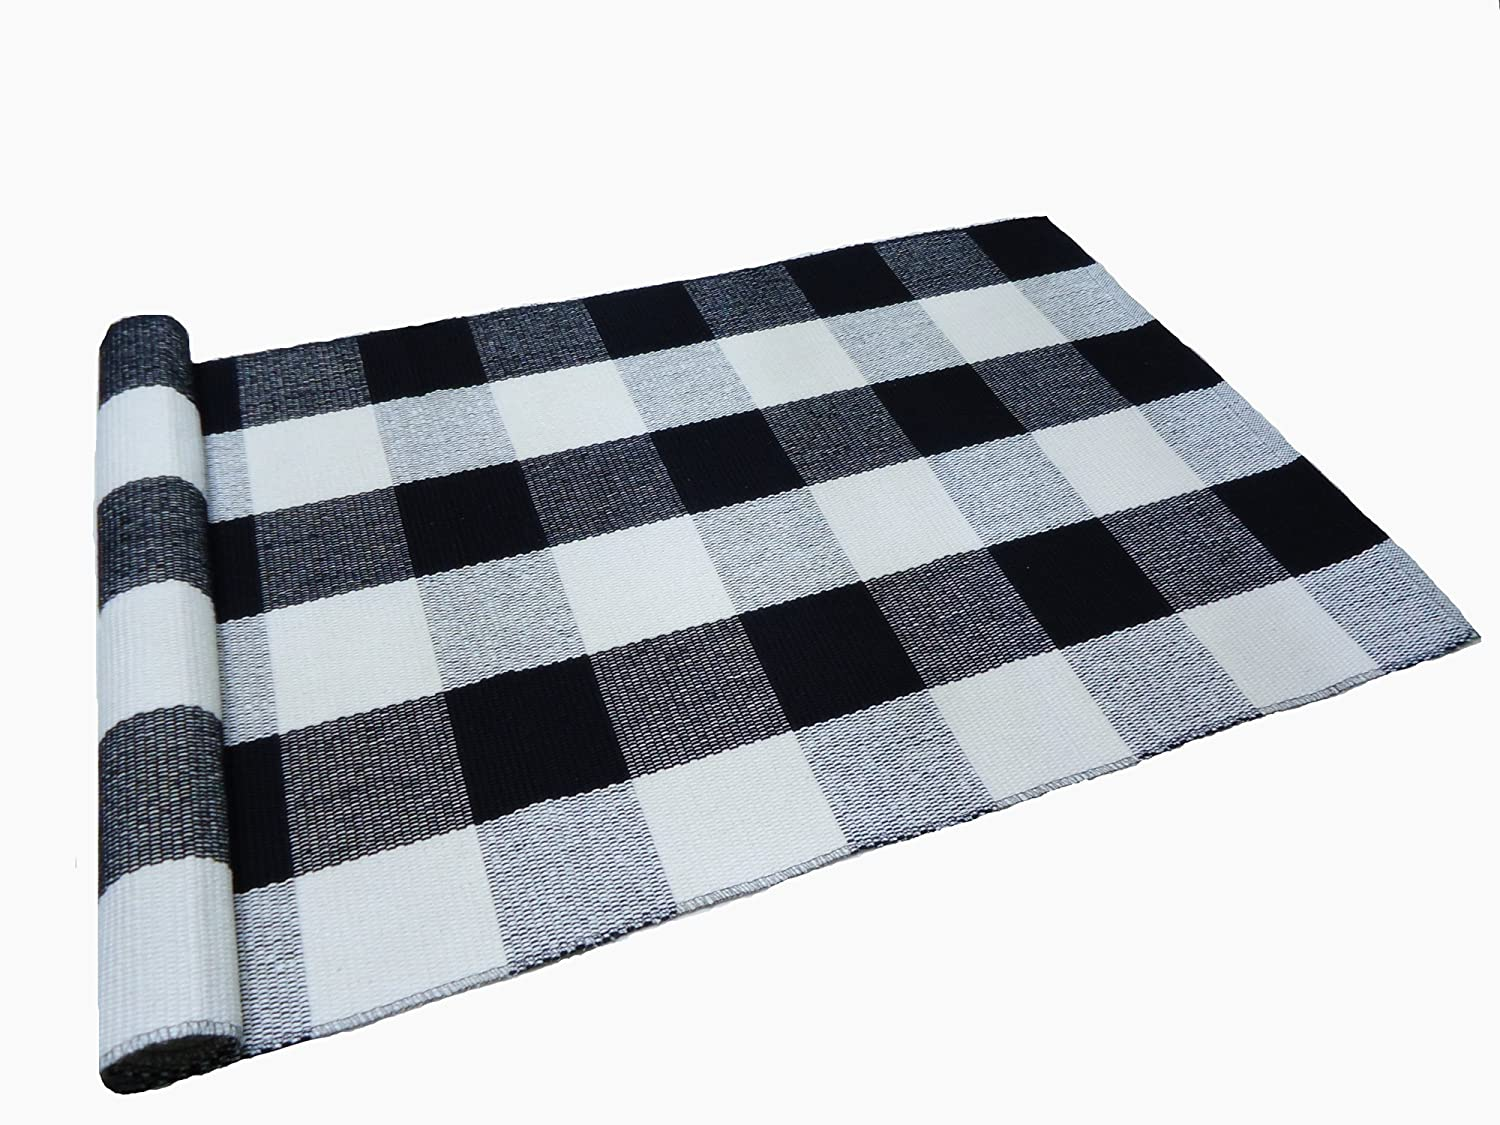 Amazon.com: Buffalo Checked Braided Kitchen Mat Black and White Area ...